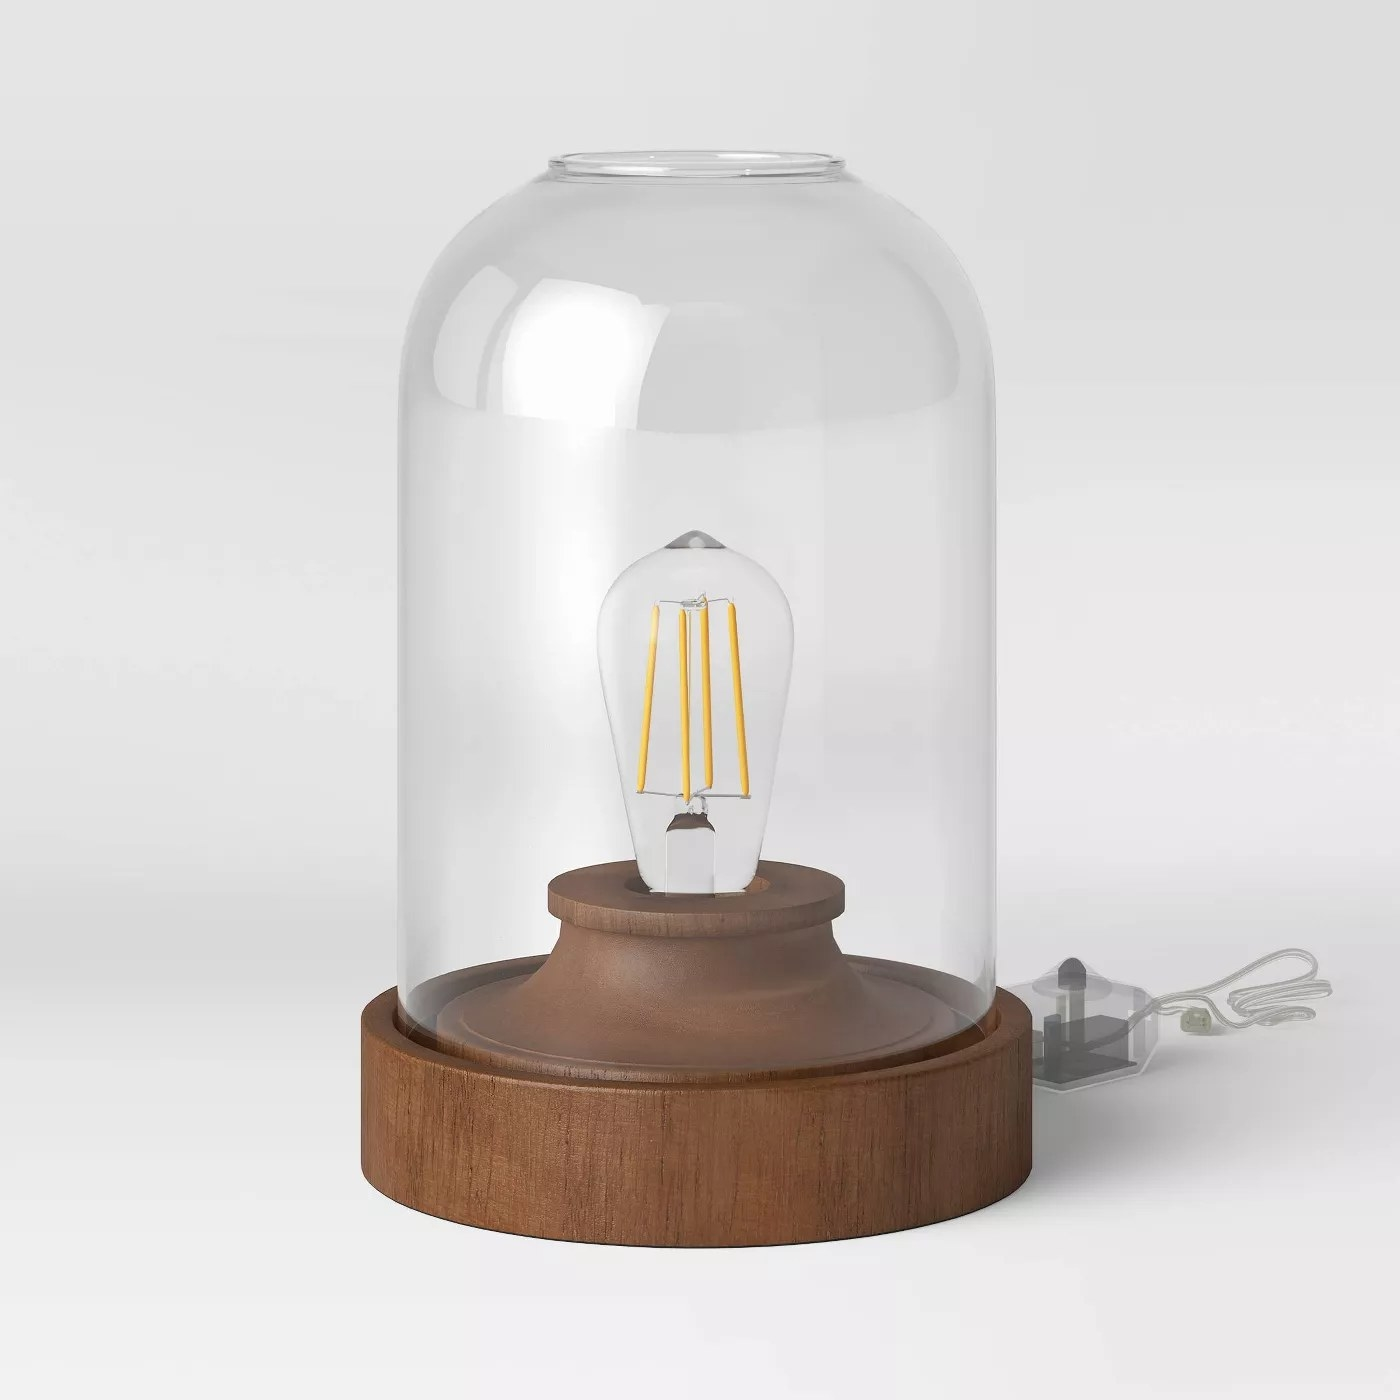 The brown-based lamp with a glass dome top